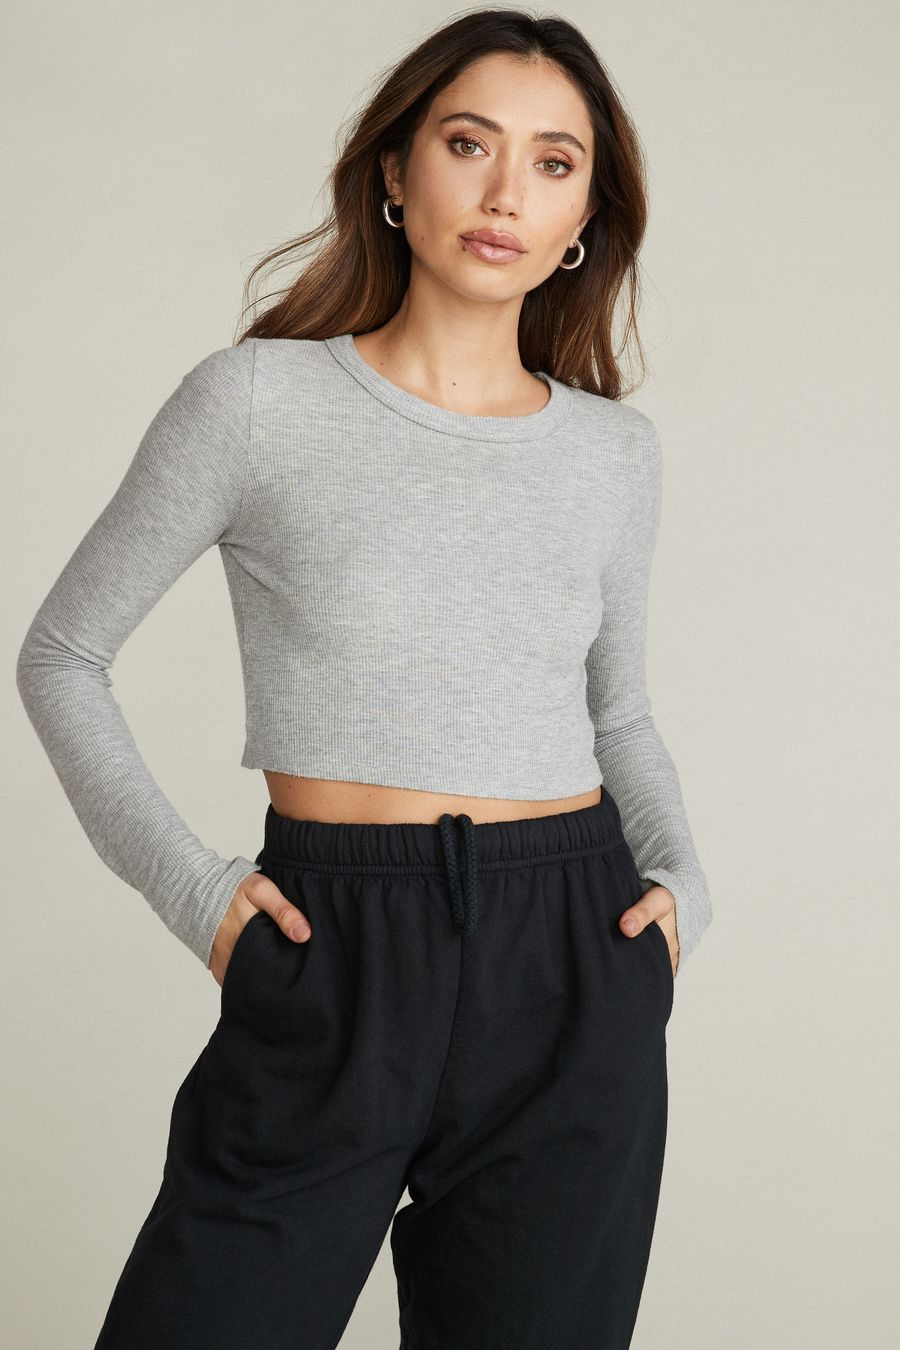 DYLAN - GREY by Belen, available on shopwithbelen.com for $60 Kaia Gerber Top Exact Product